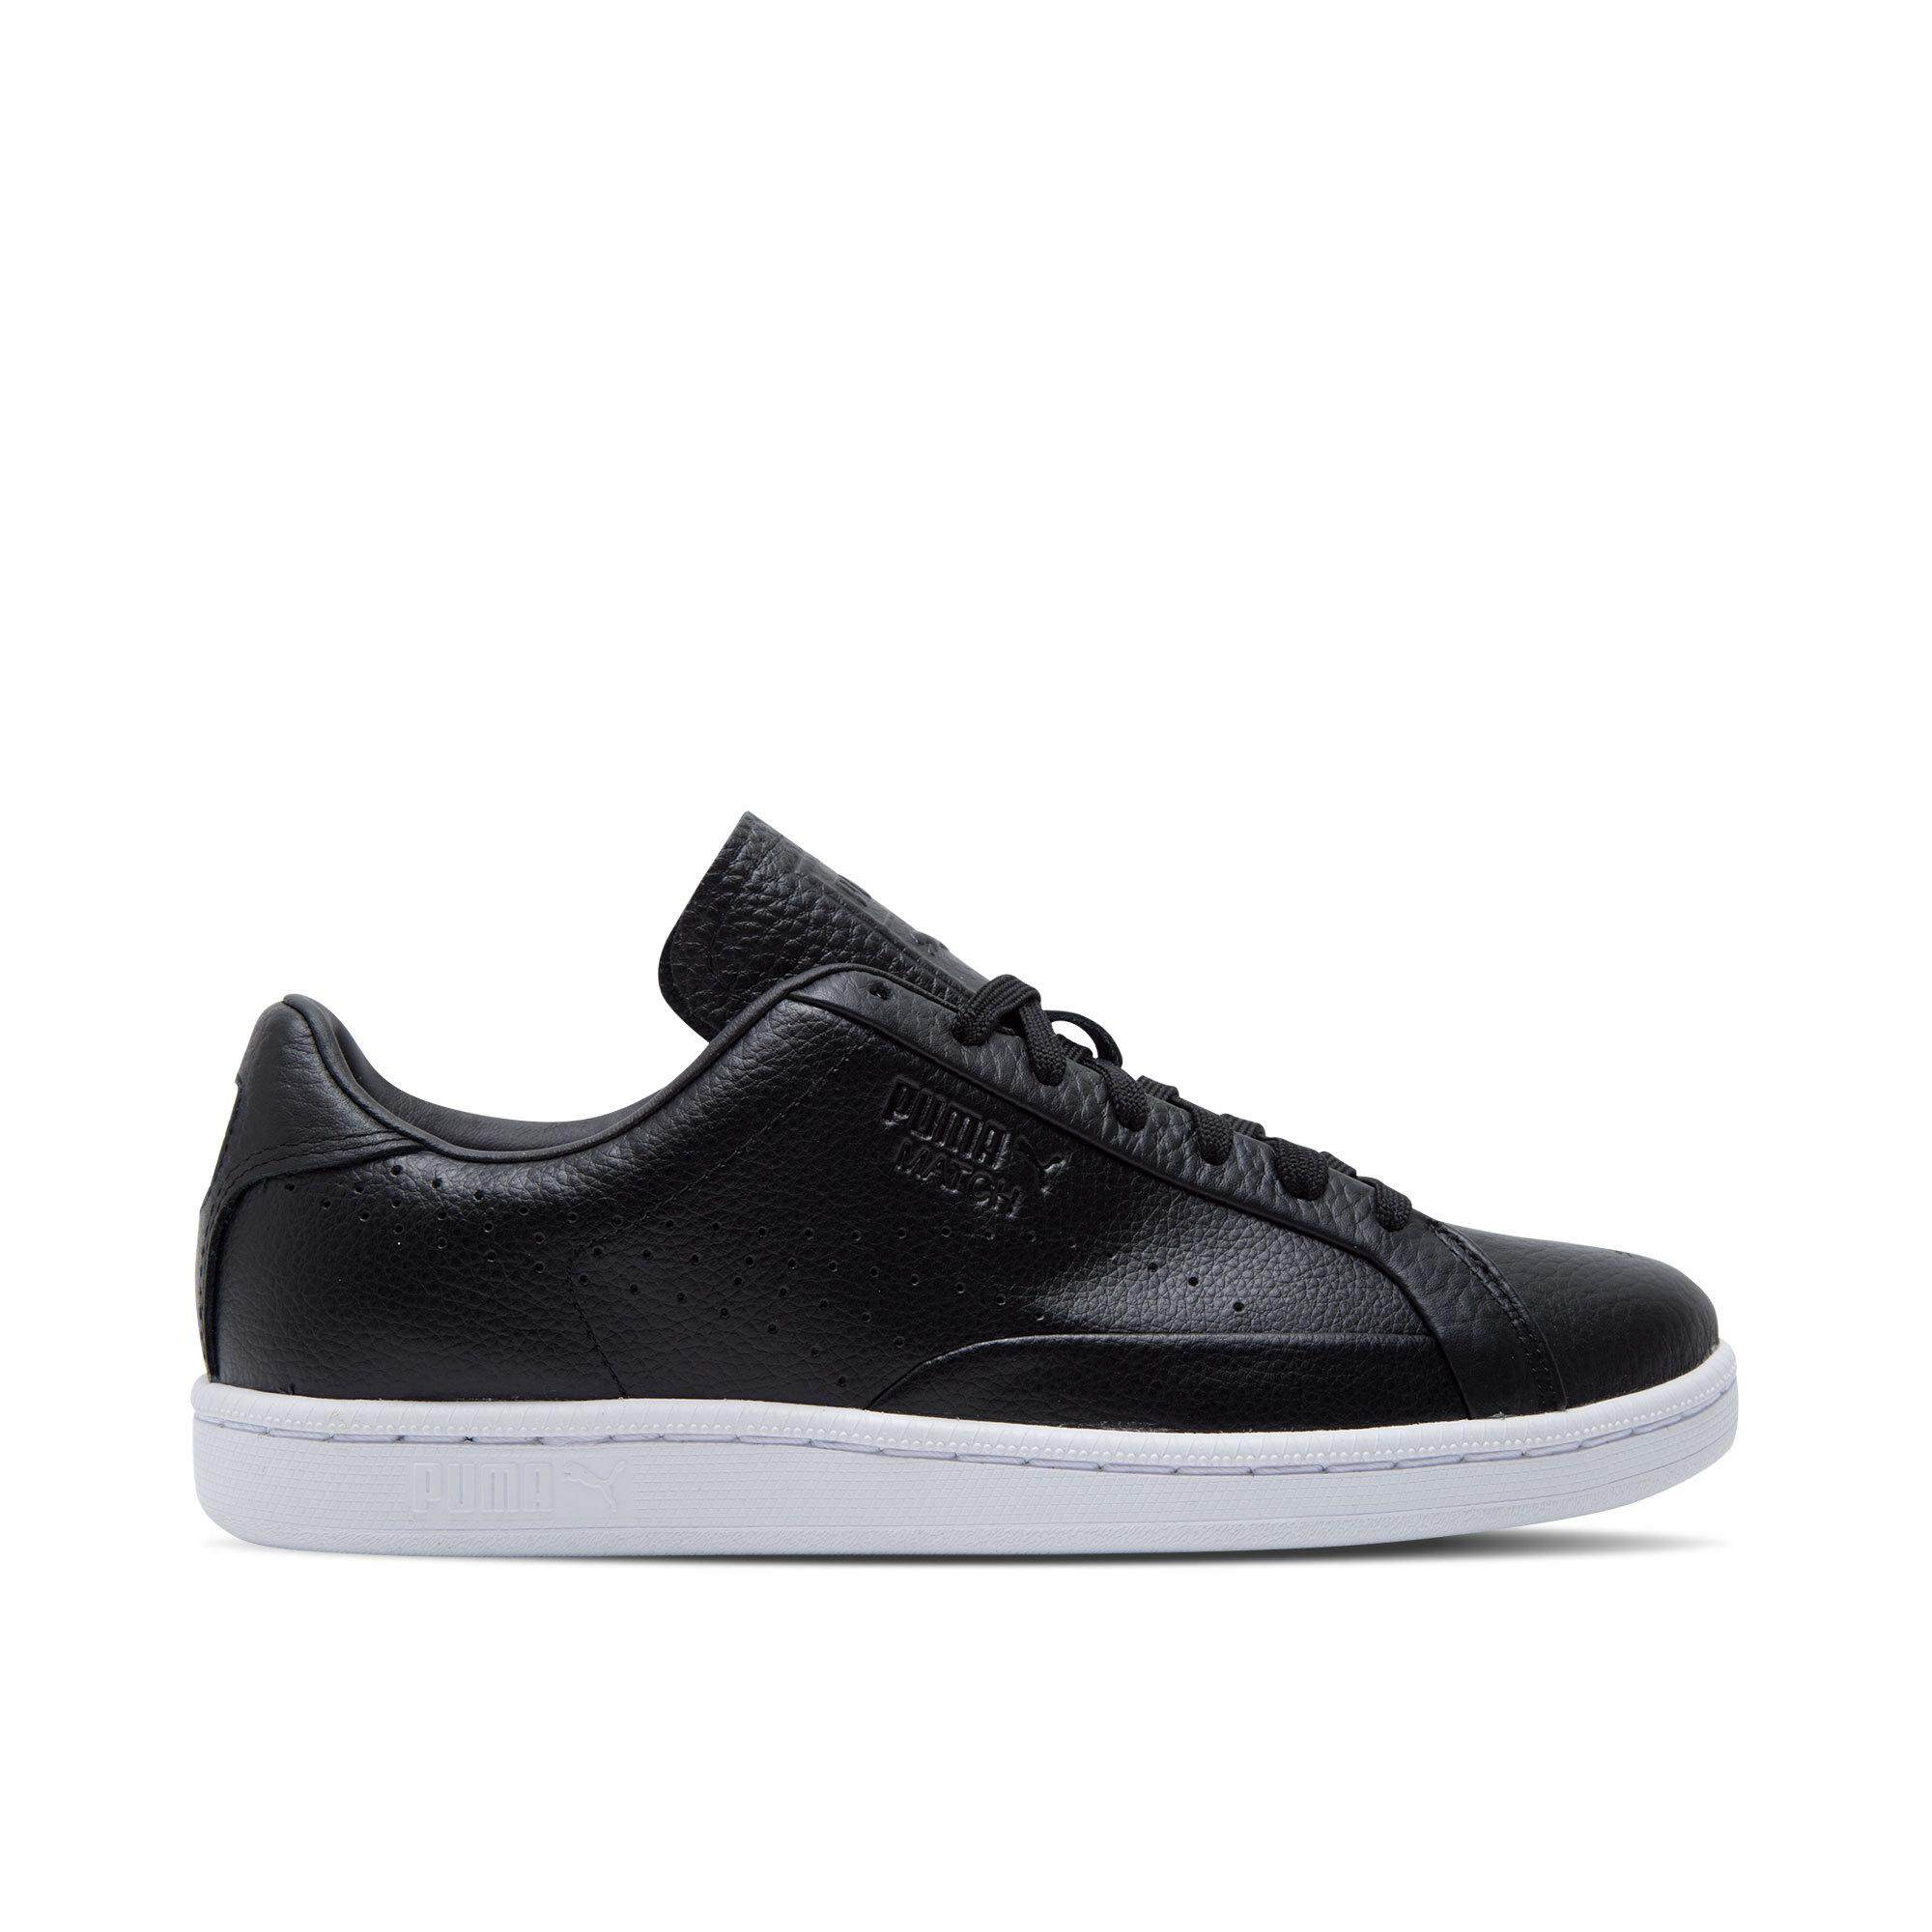 ad484898df0 PUMA Puma Shoppe Men s Shoes Women s Shoes Athletic Shoes 2018 Spring New  Style Couples Casual